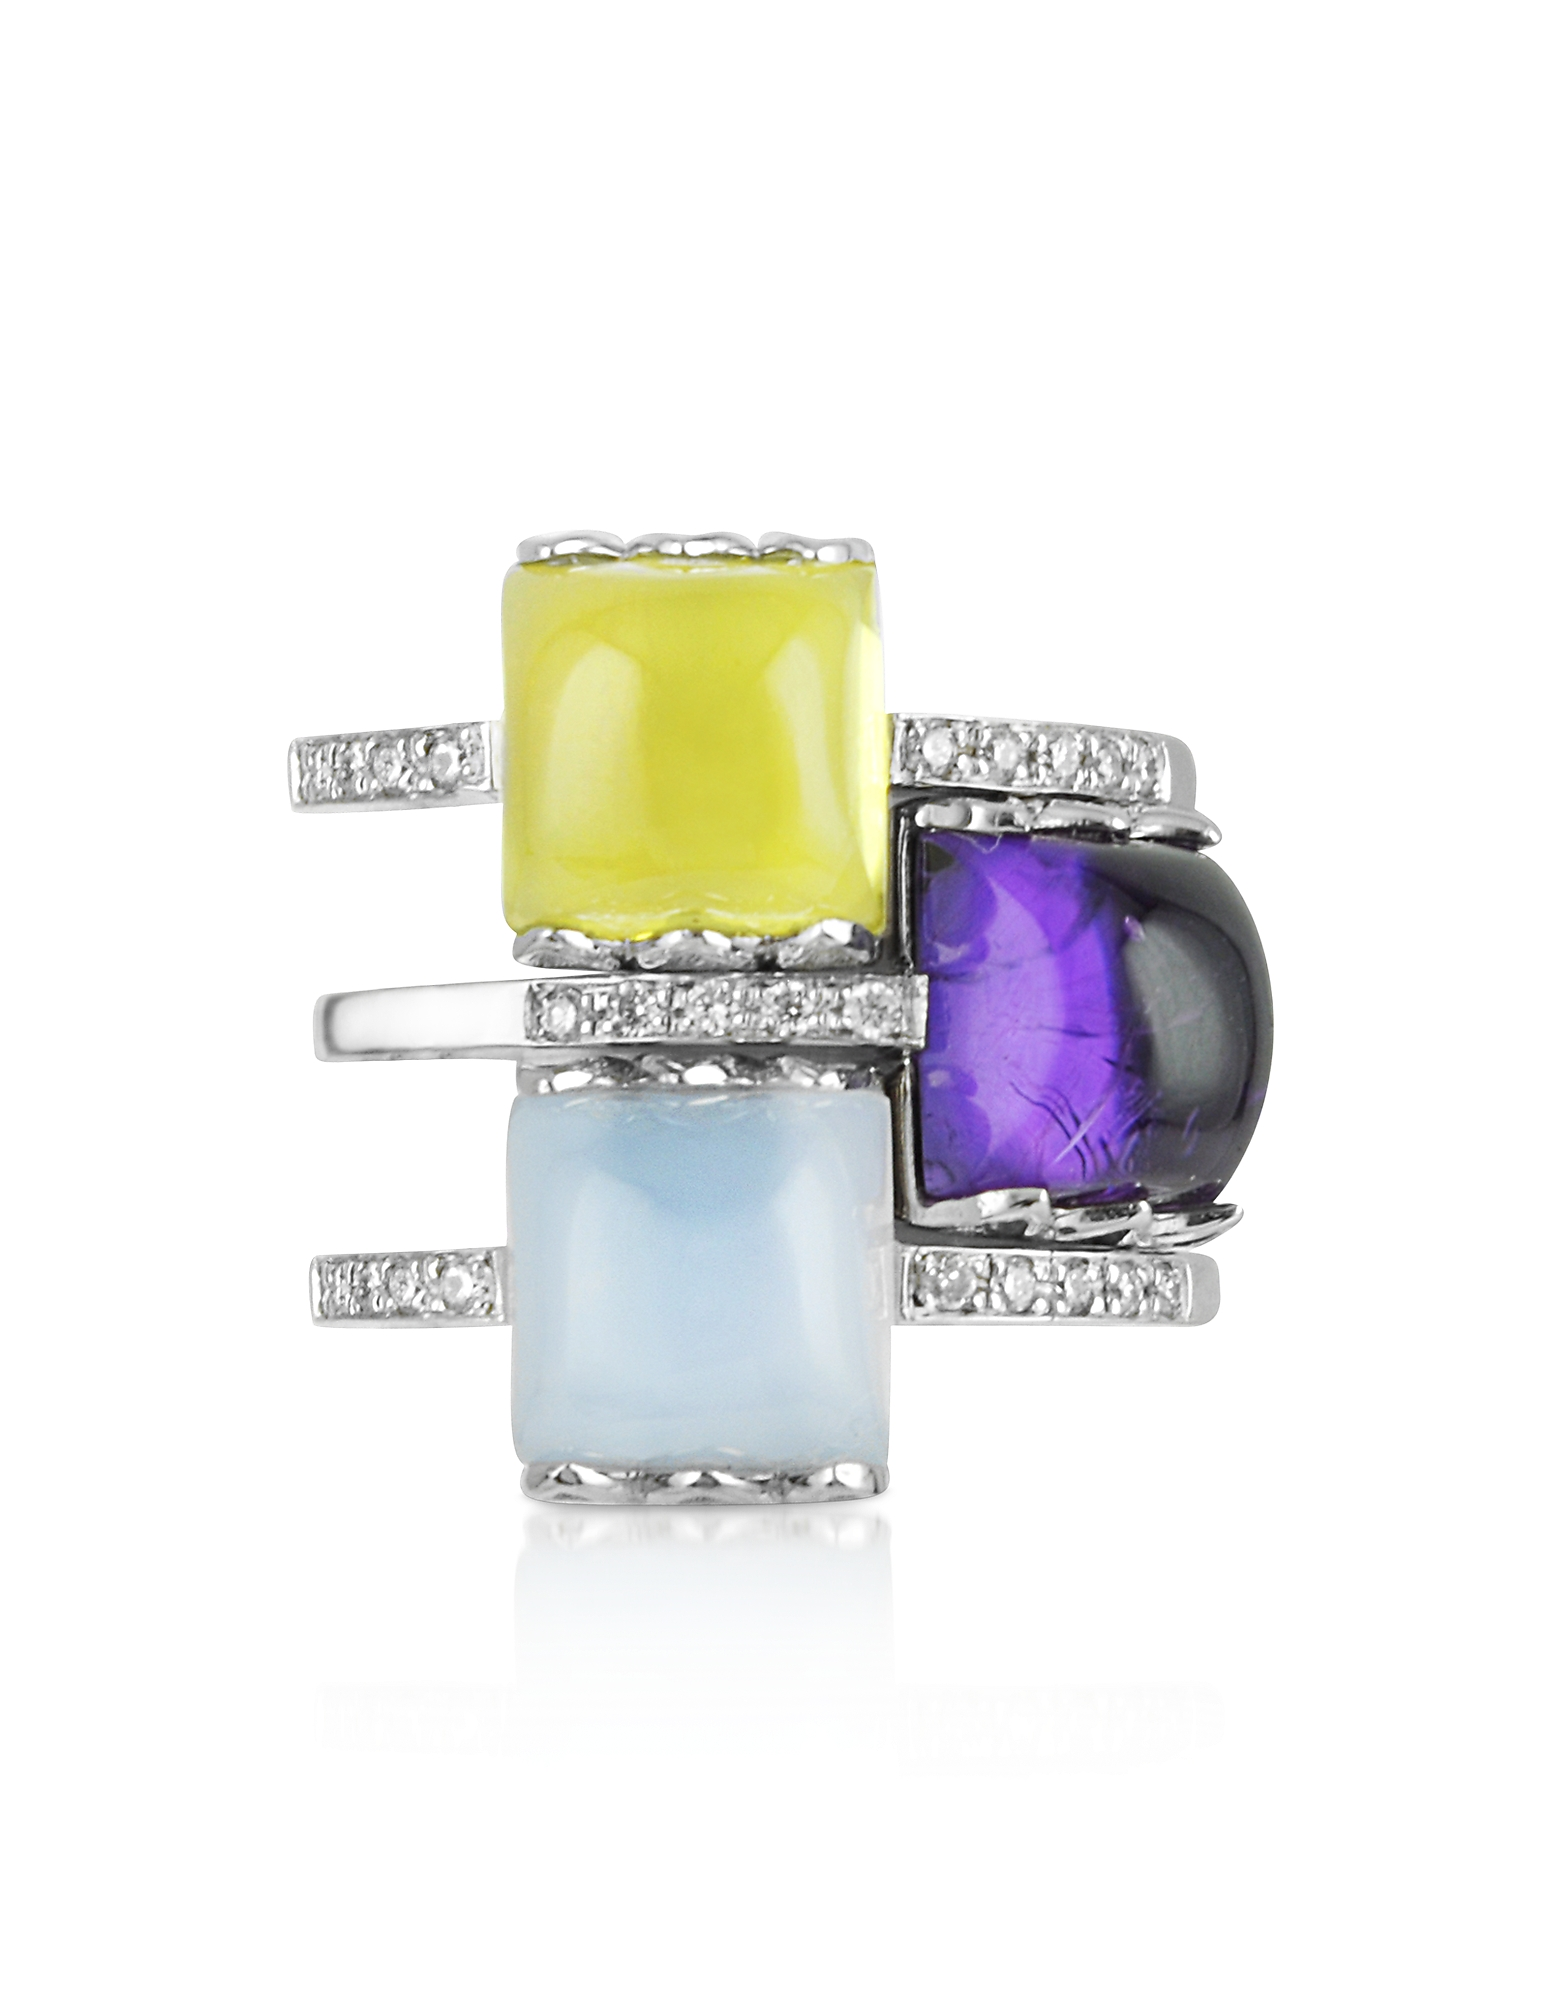 Mia & Beverly Rings, Gemstone and Diamond 18K White Gold Ring